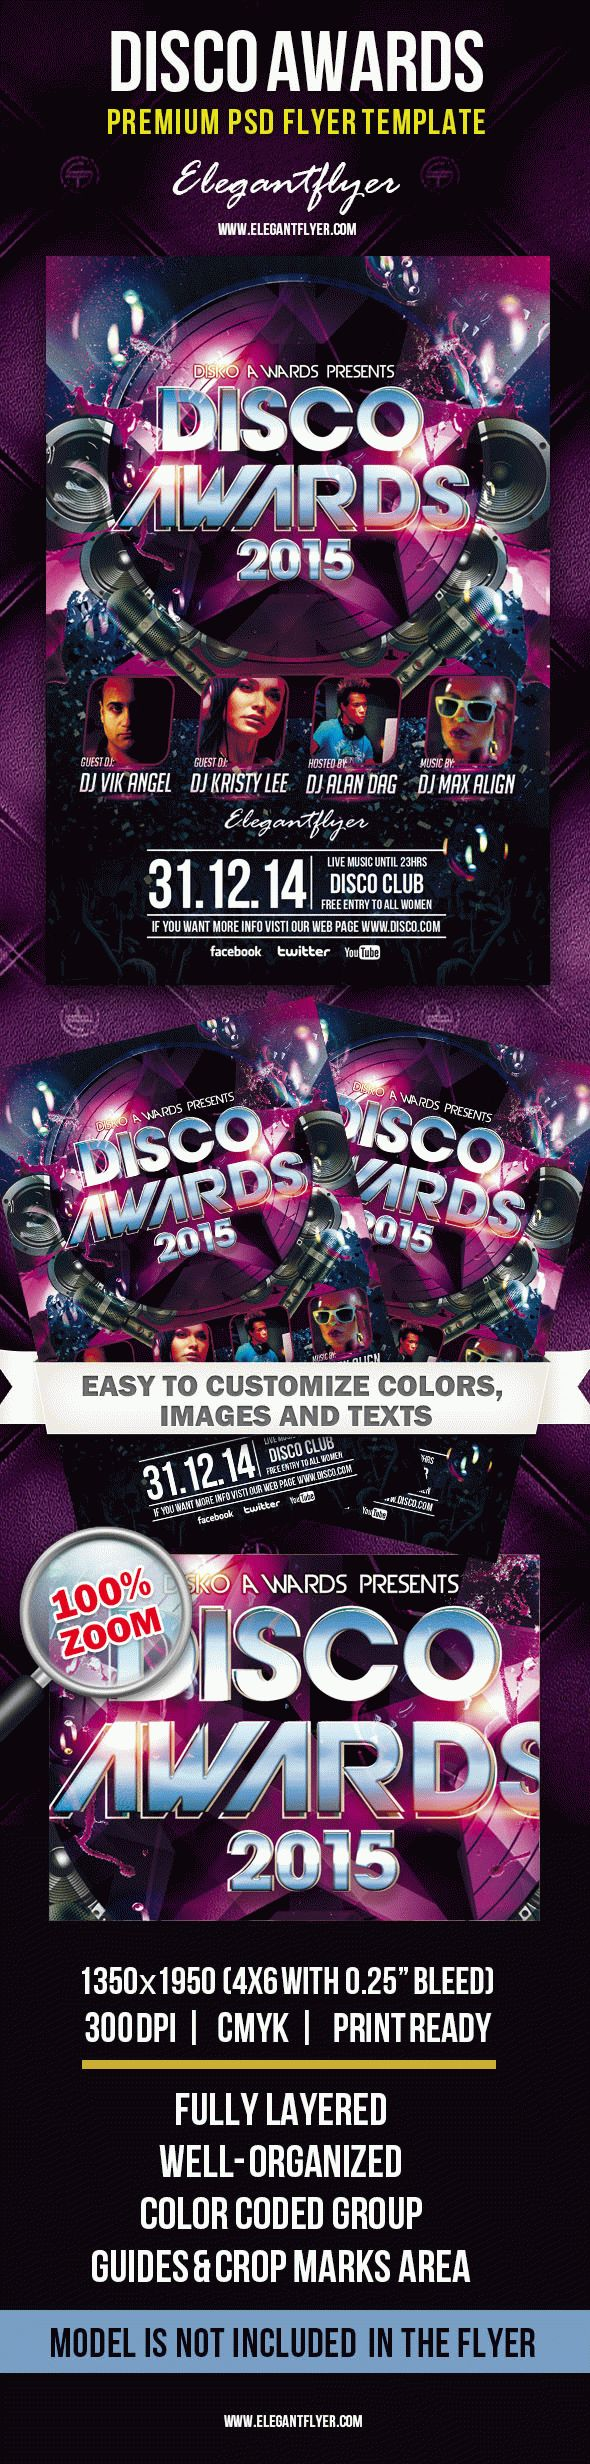 Disco Awards – Premium Club flyer PSD Template